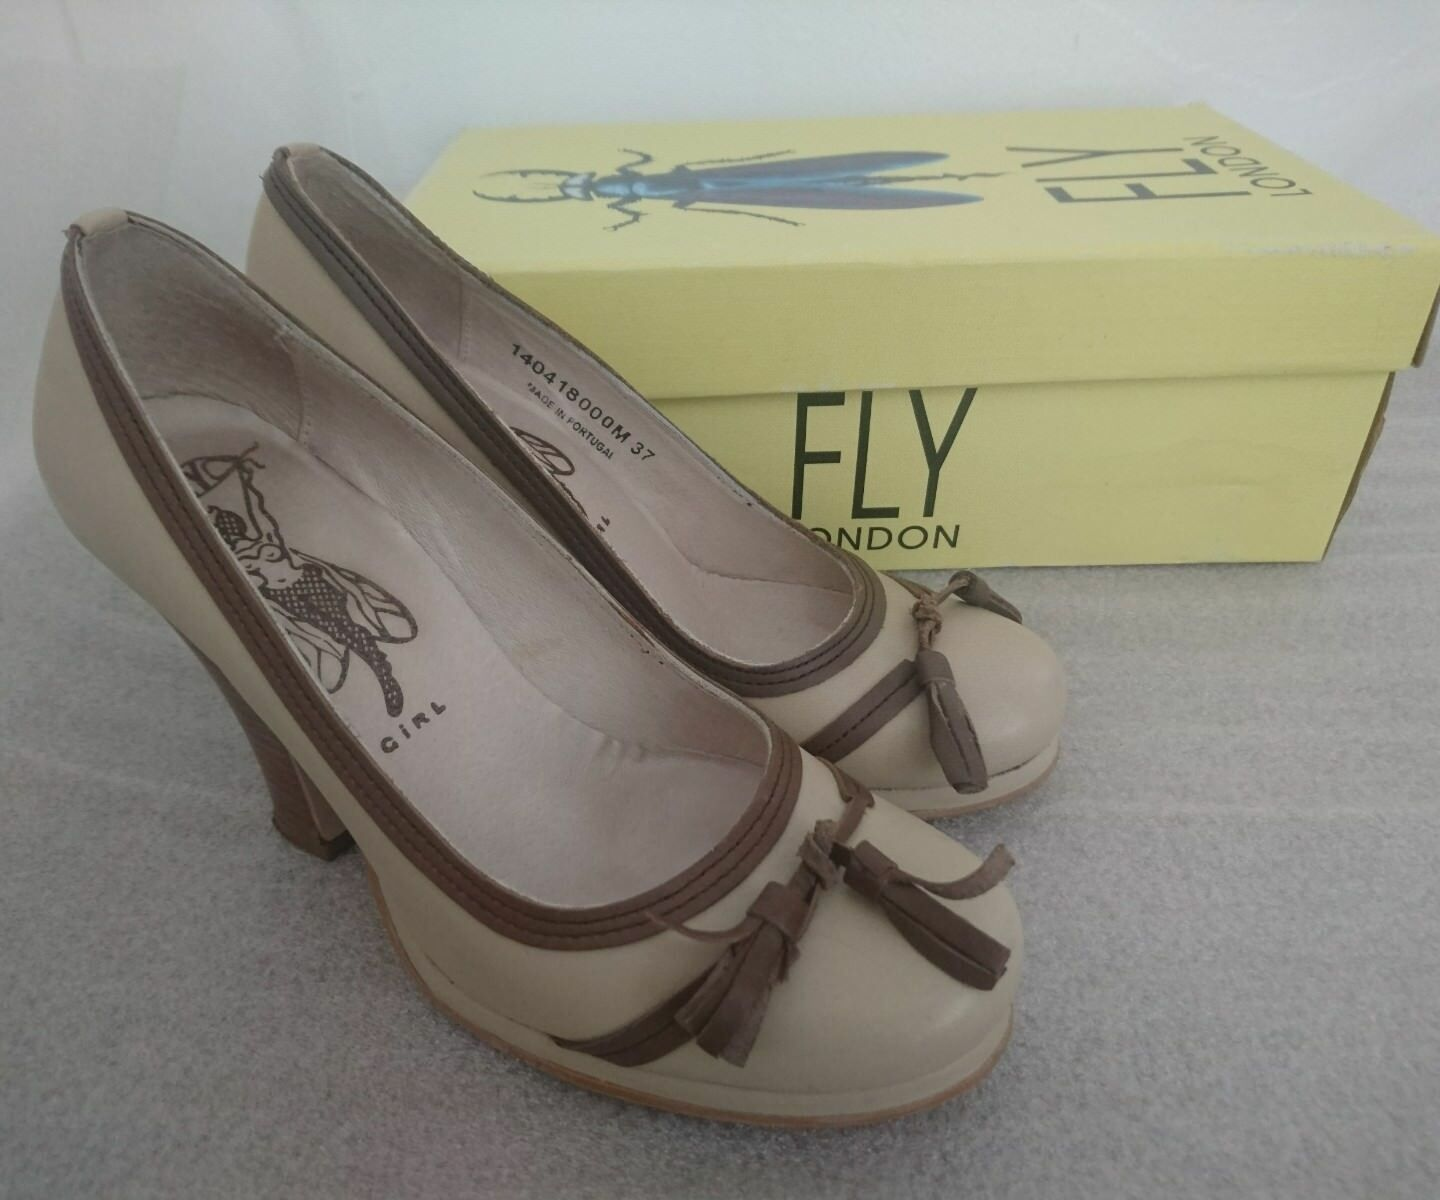 Fly London Girl Brown & Camel Leather Shoes Size 37 / UK 4 Tassel Detail In Box